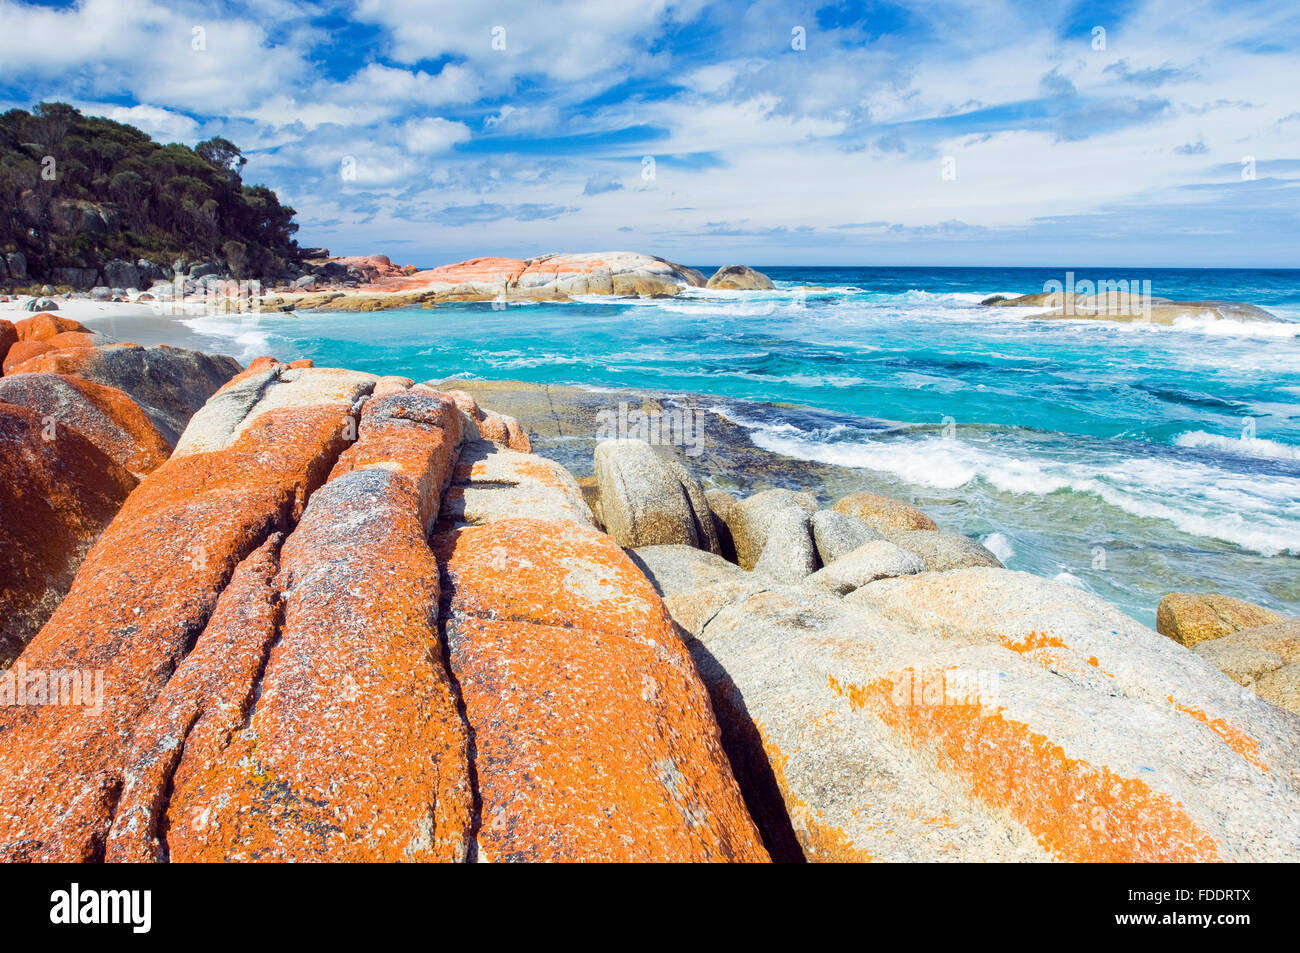 Bay of Fires, East Coast Tasmania showing rocks with orange lichens - Stock Image